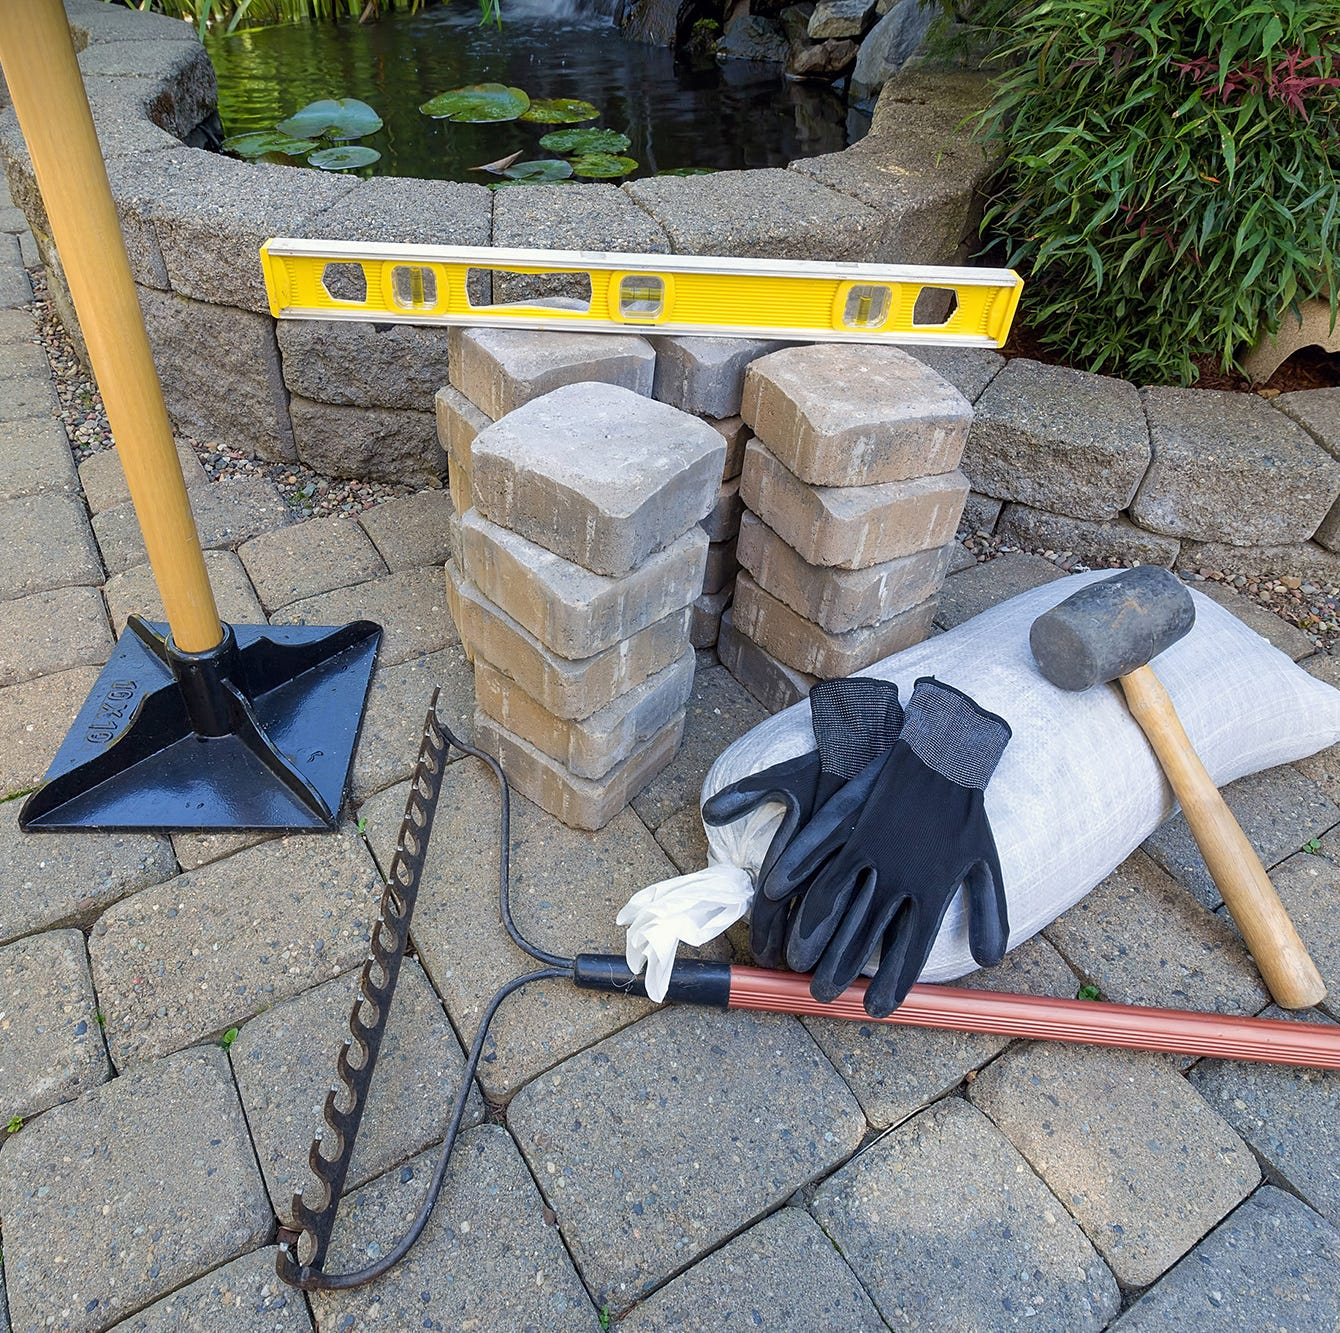 Angie's List: What kind of maintenance does my hardscape require?